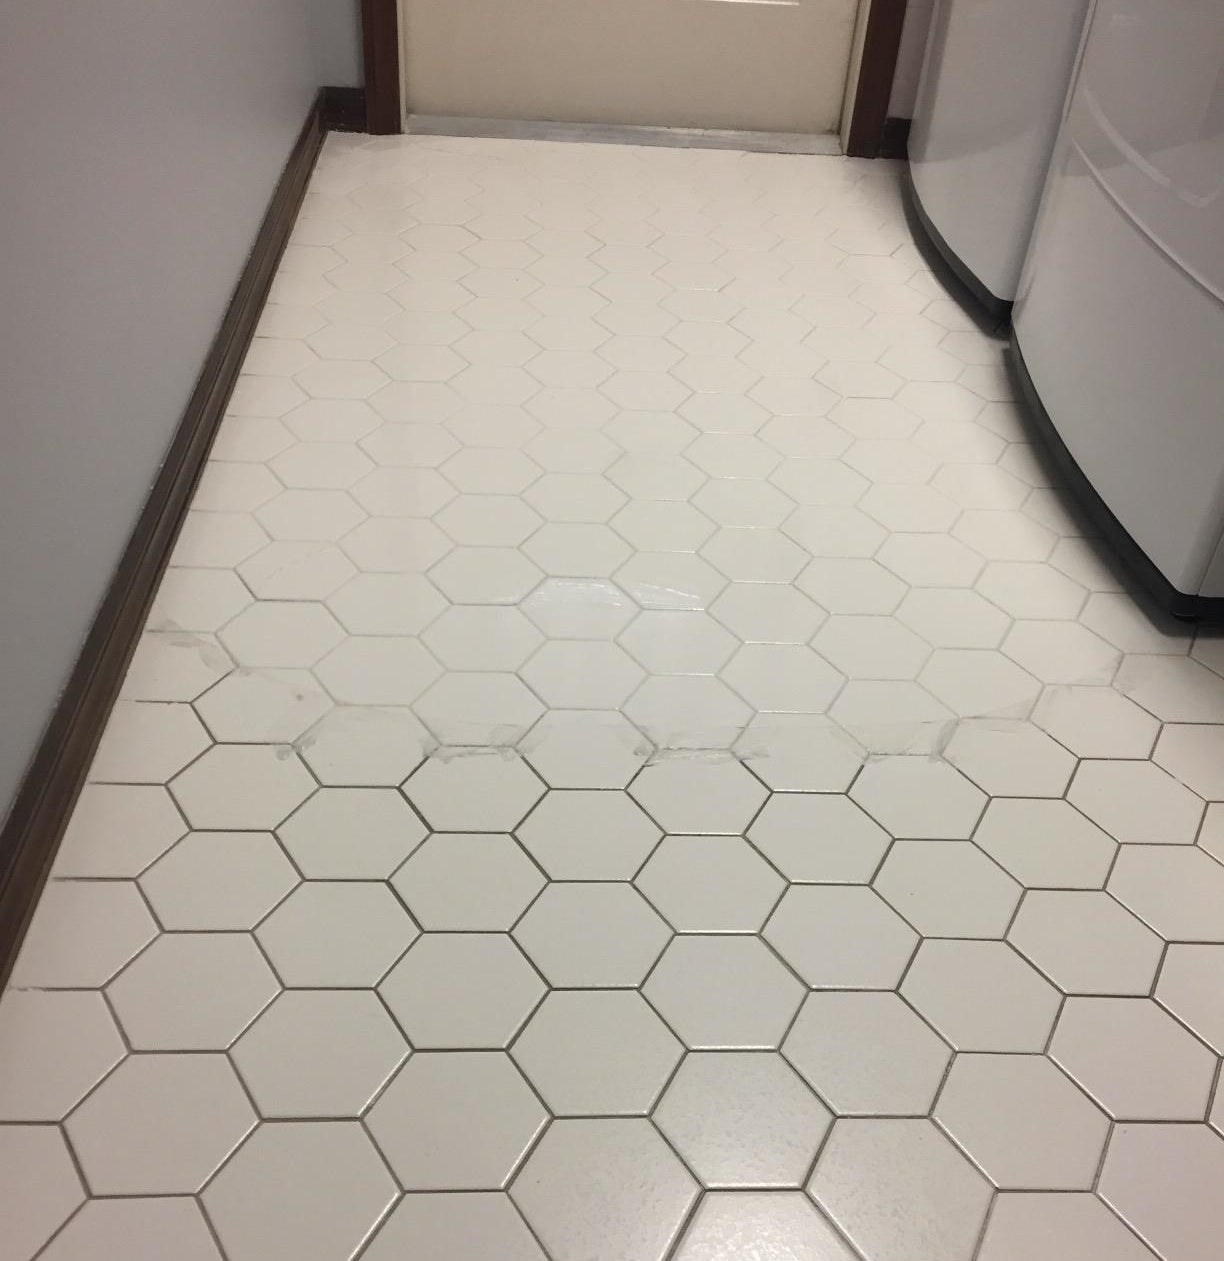 A tiled floor that has been scrubbed and now looks much brighter, whiter, and cleaner than the section of the floor that has not yet been scrubbed